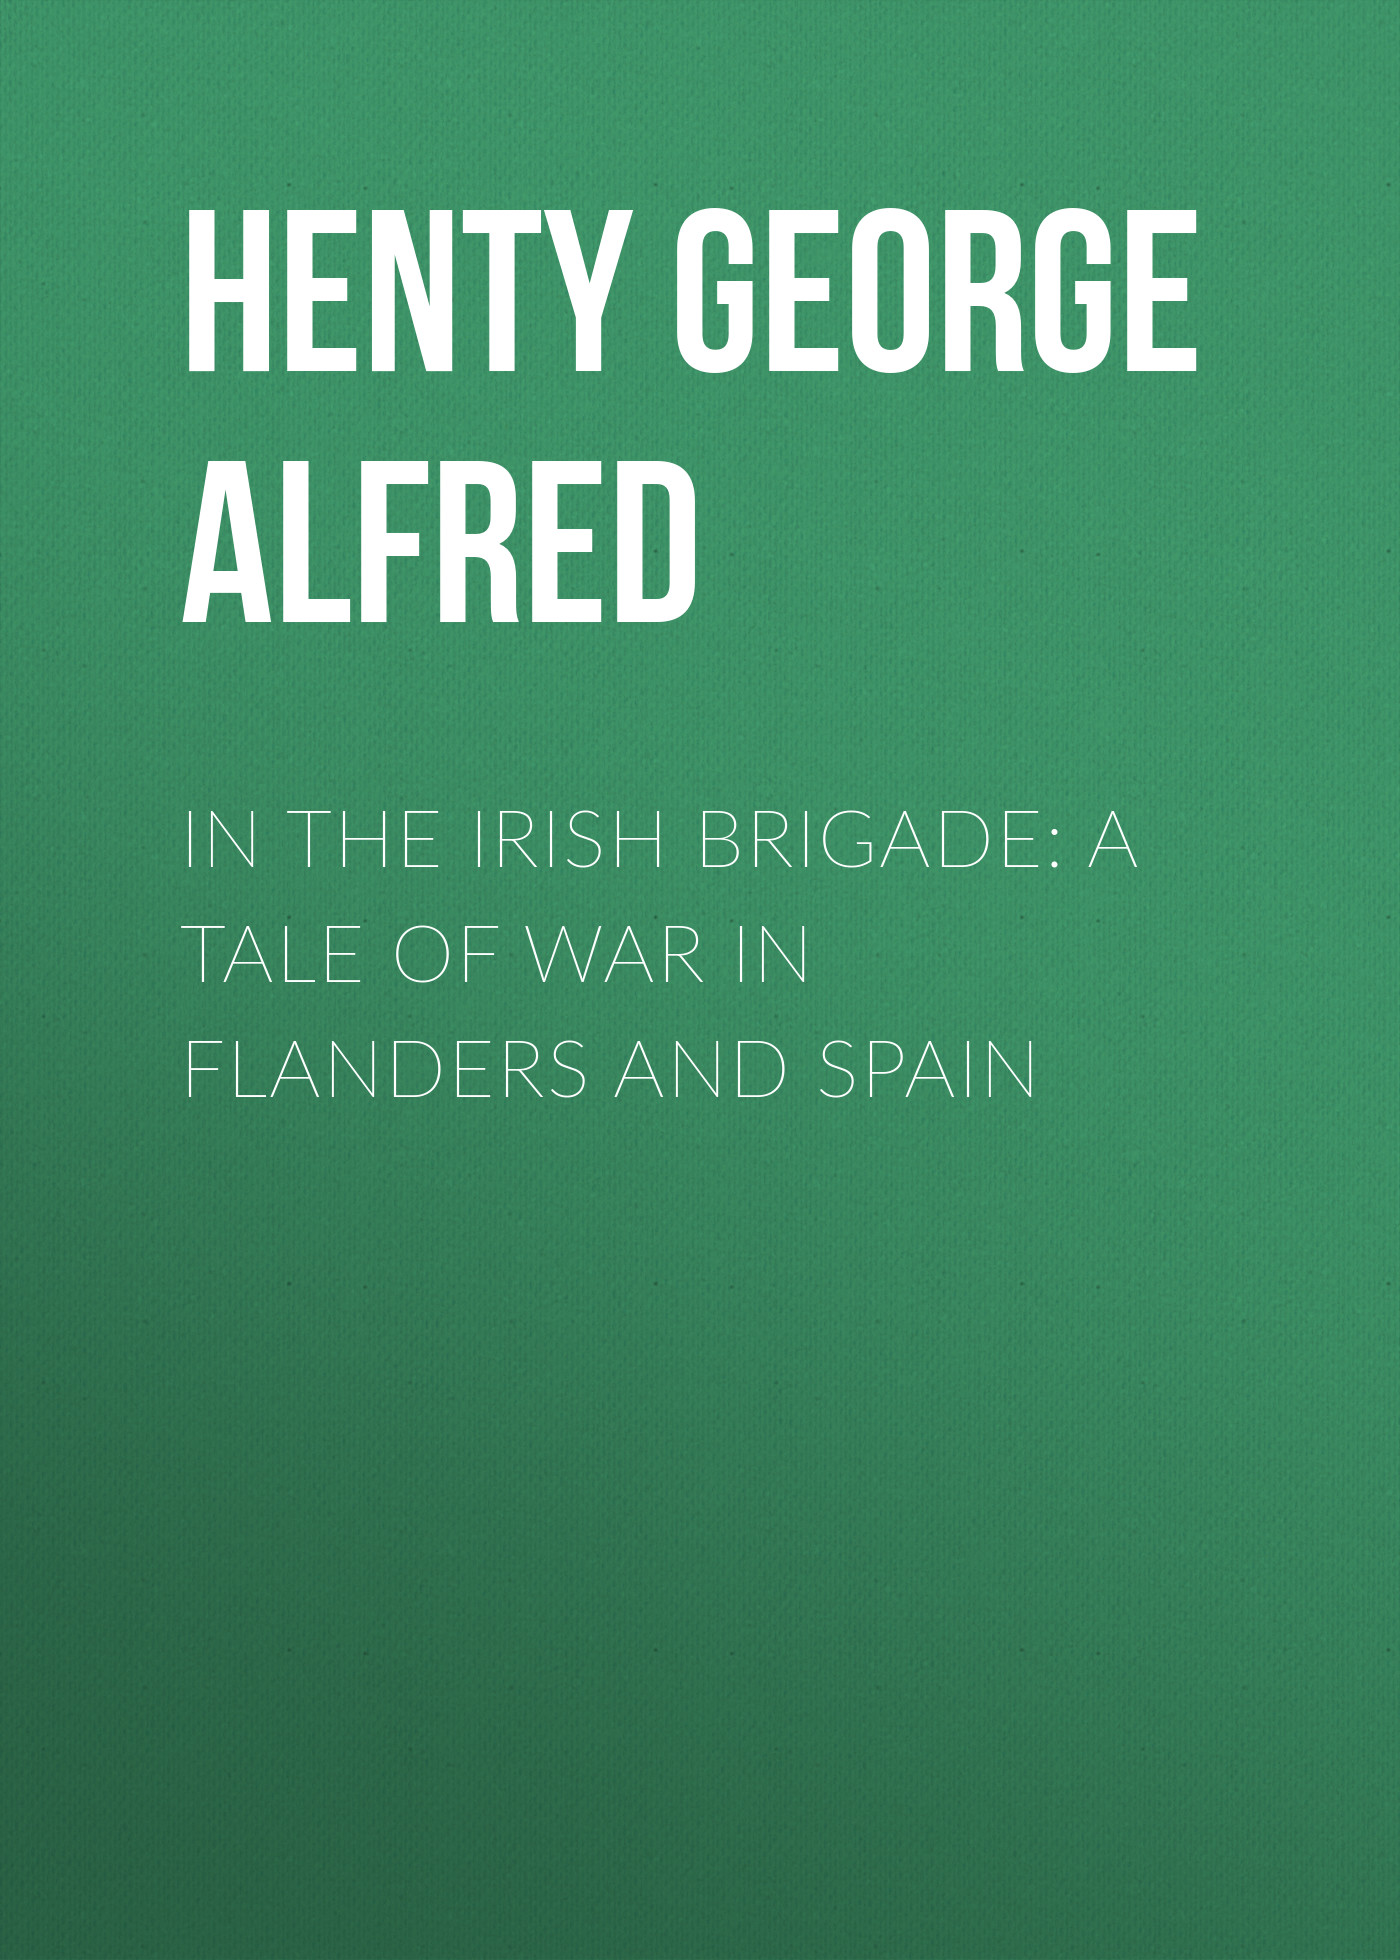 Henty George Alfred In the Irish Brigade: A Tale of War in Flanders and Spain george augustus sala my diary in america in the midst of war